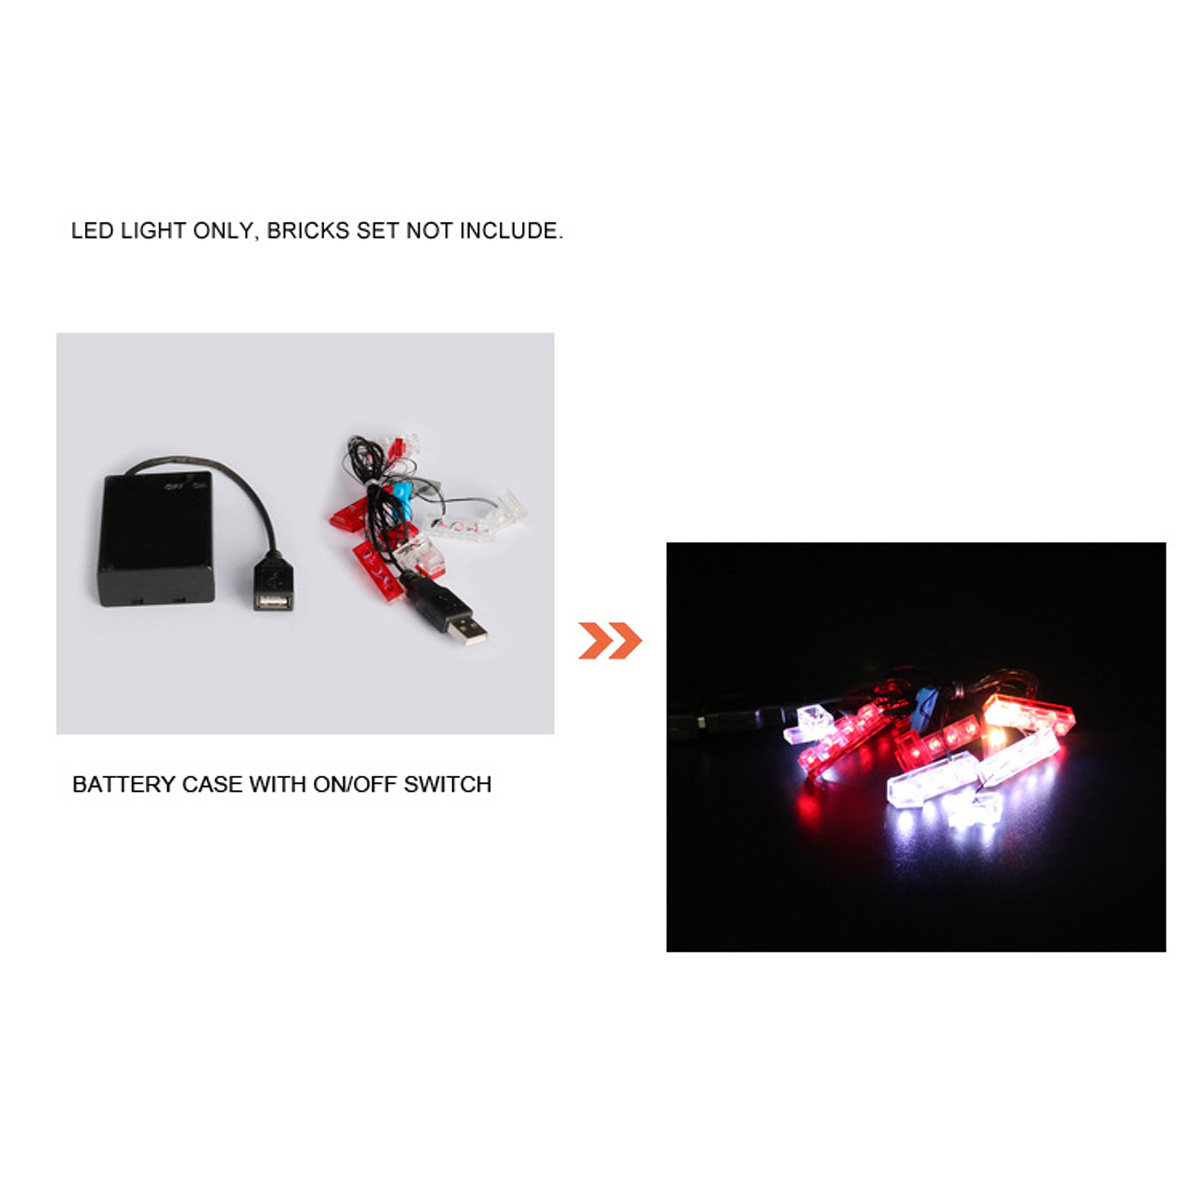 LED Lighting Kit for Lego for 42056 for Porsche 911 GT3 RS Toy Bricks Car Lighting Parts Powered by USB ( Model Not Included ) 4